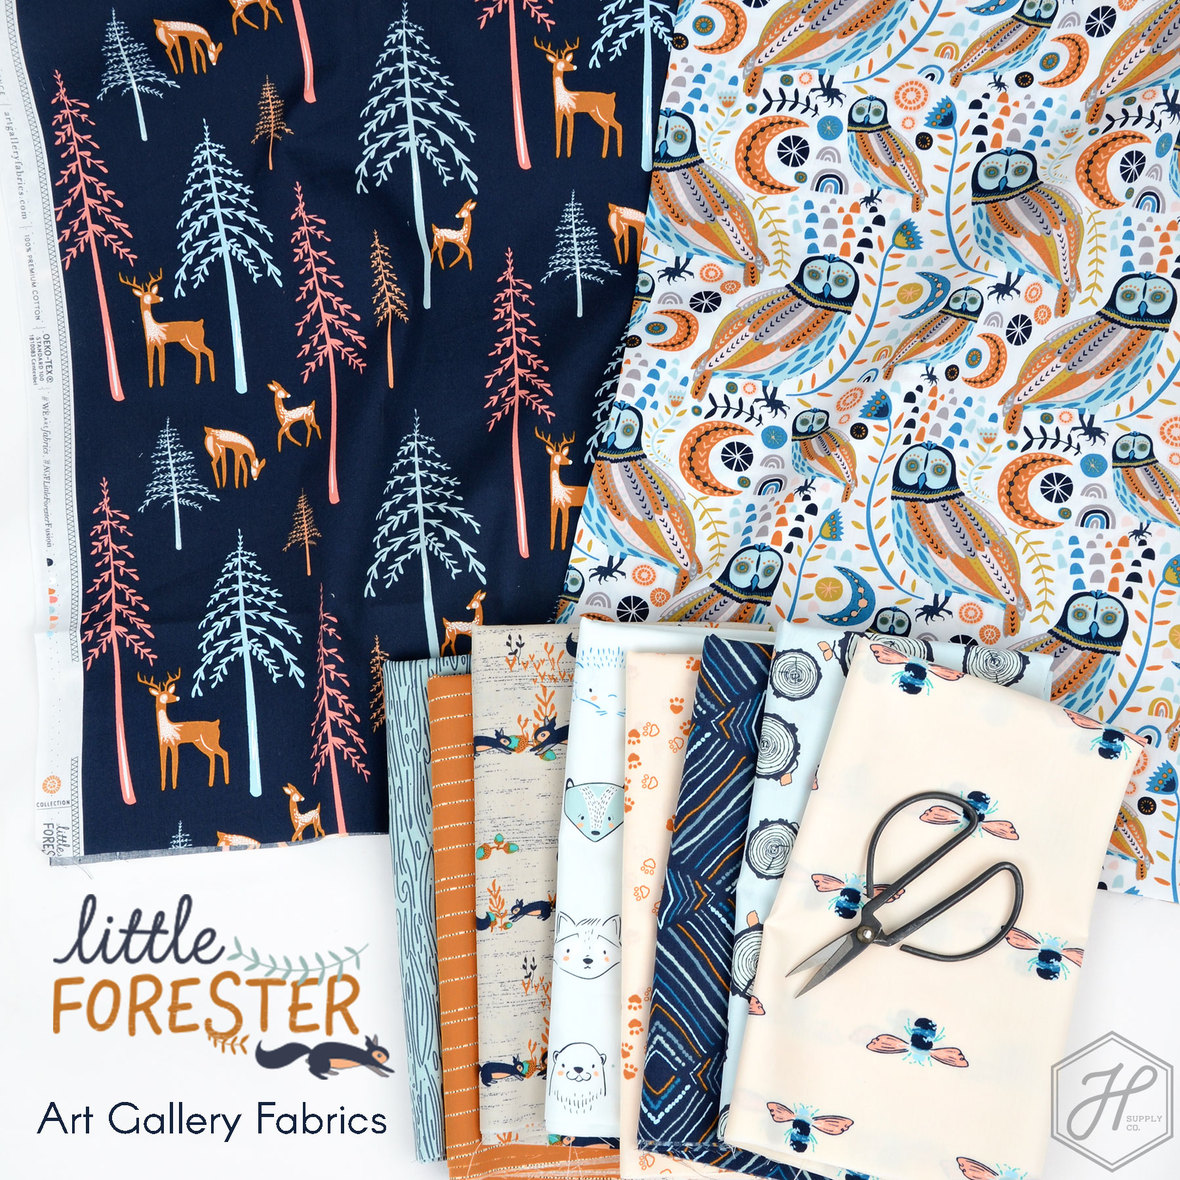 Little-Forester-Fusion-Art-Gallery-fabric-at-Hawthorne-Supply-Co